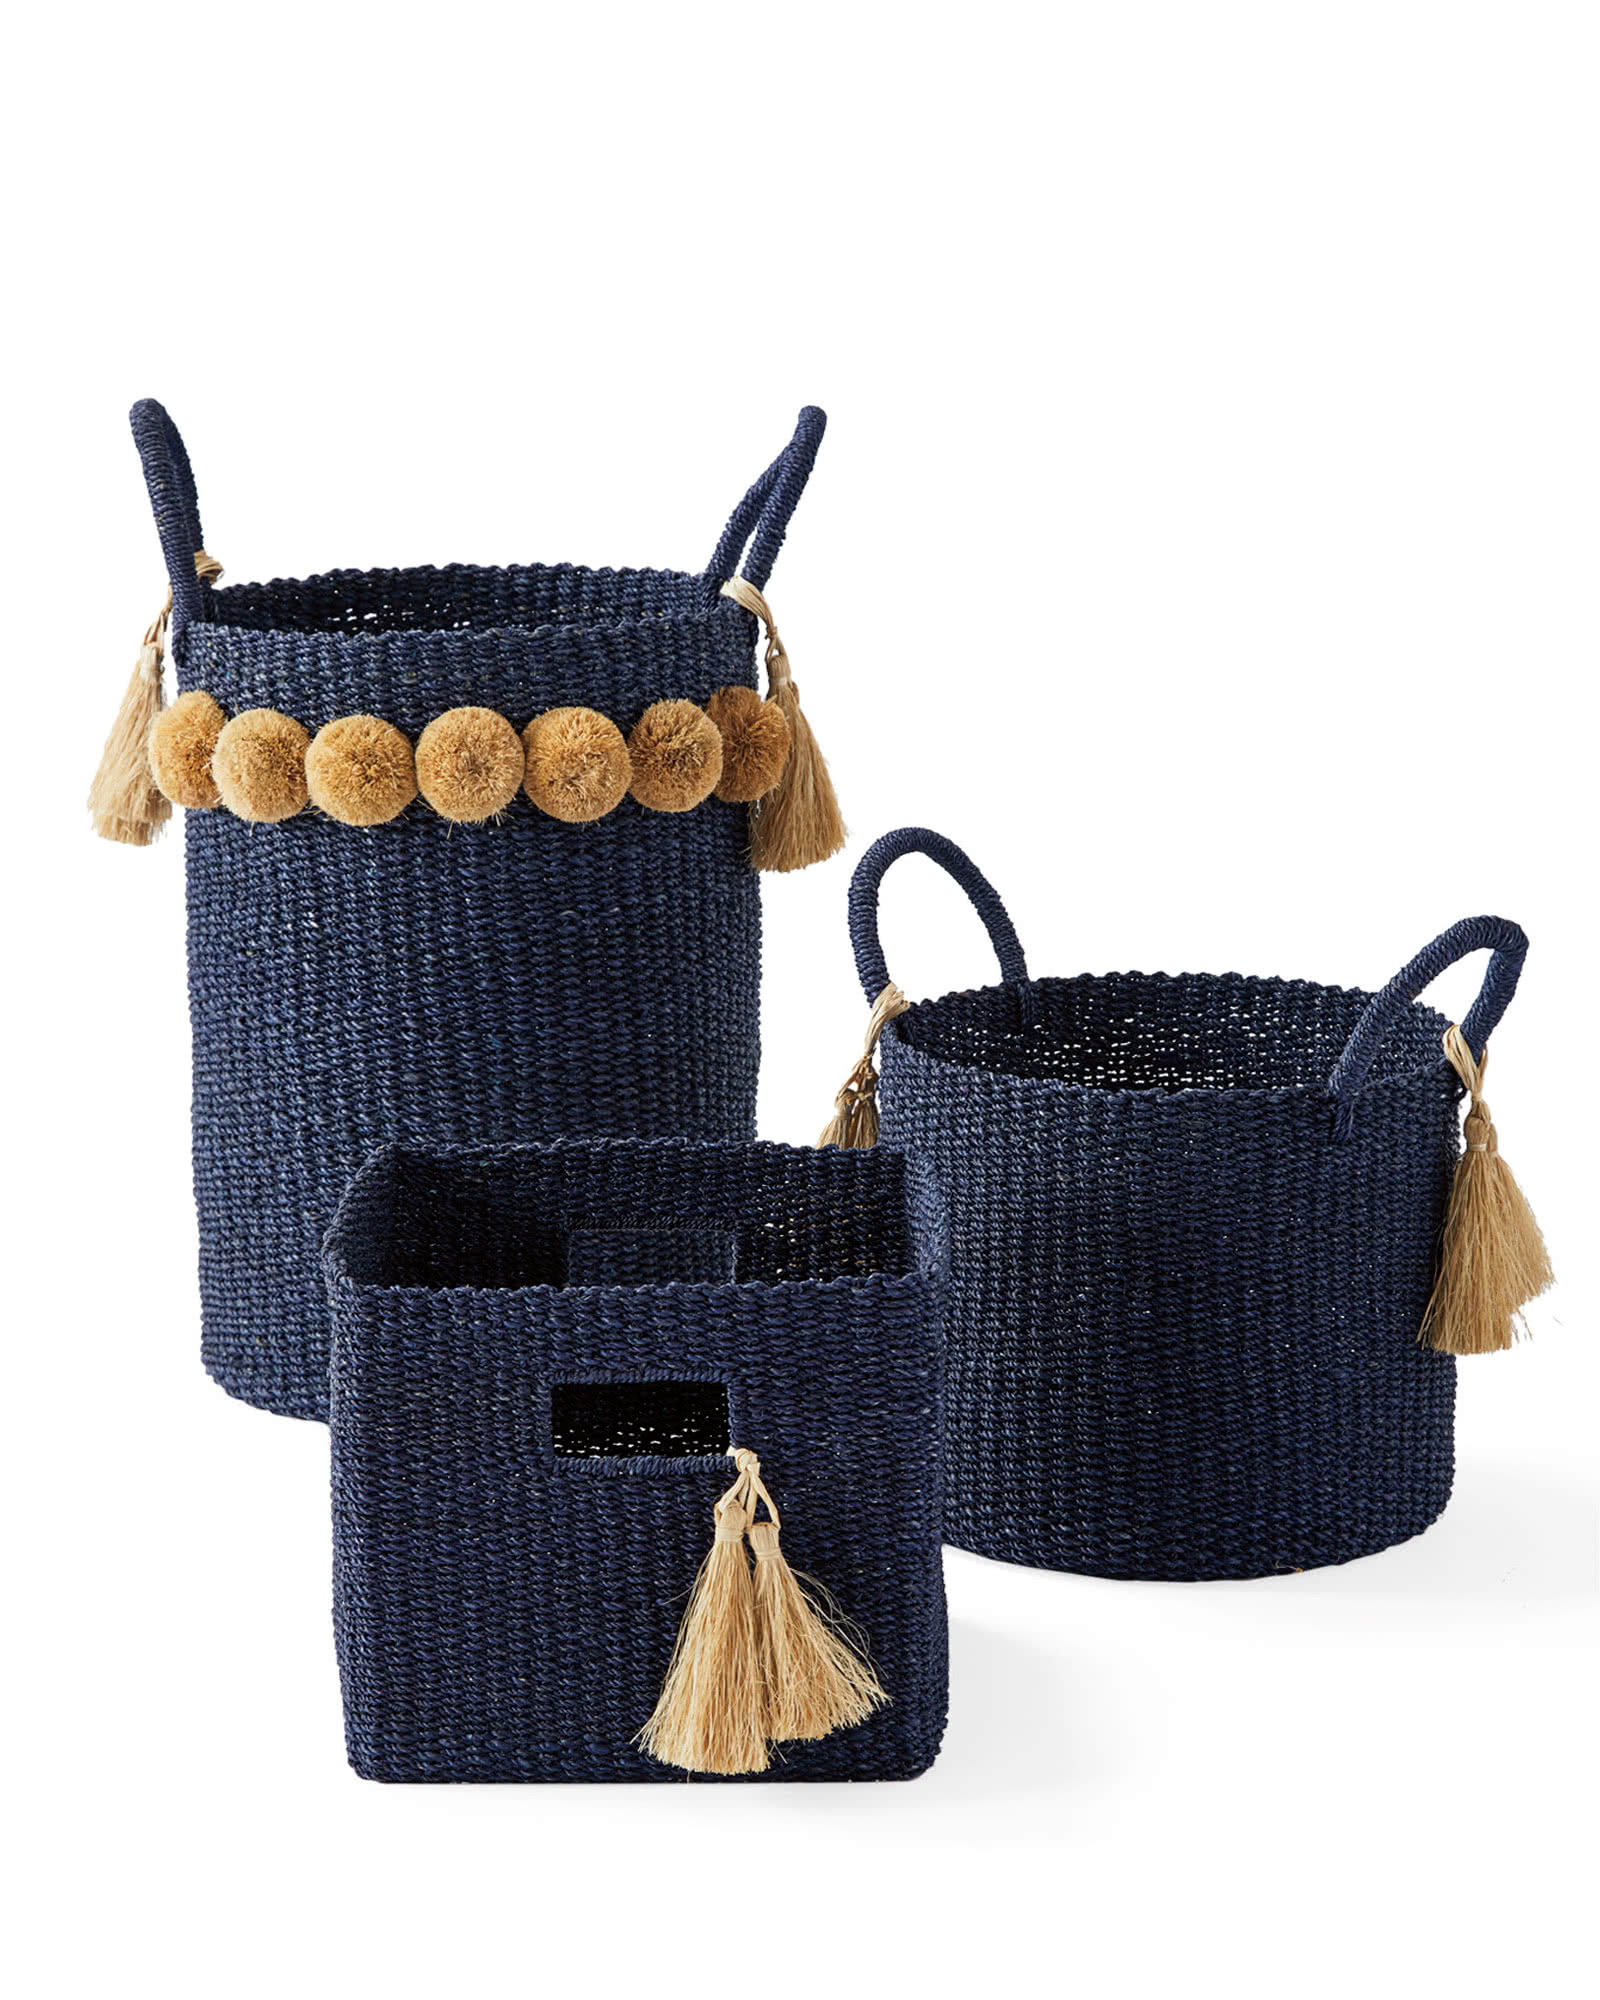 Storage_Big_Sur_Baskets_Navy_Group_MV_0128_Crop_SH.jpg